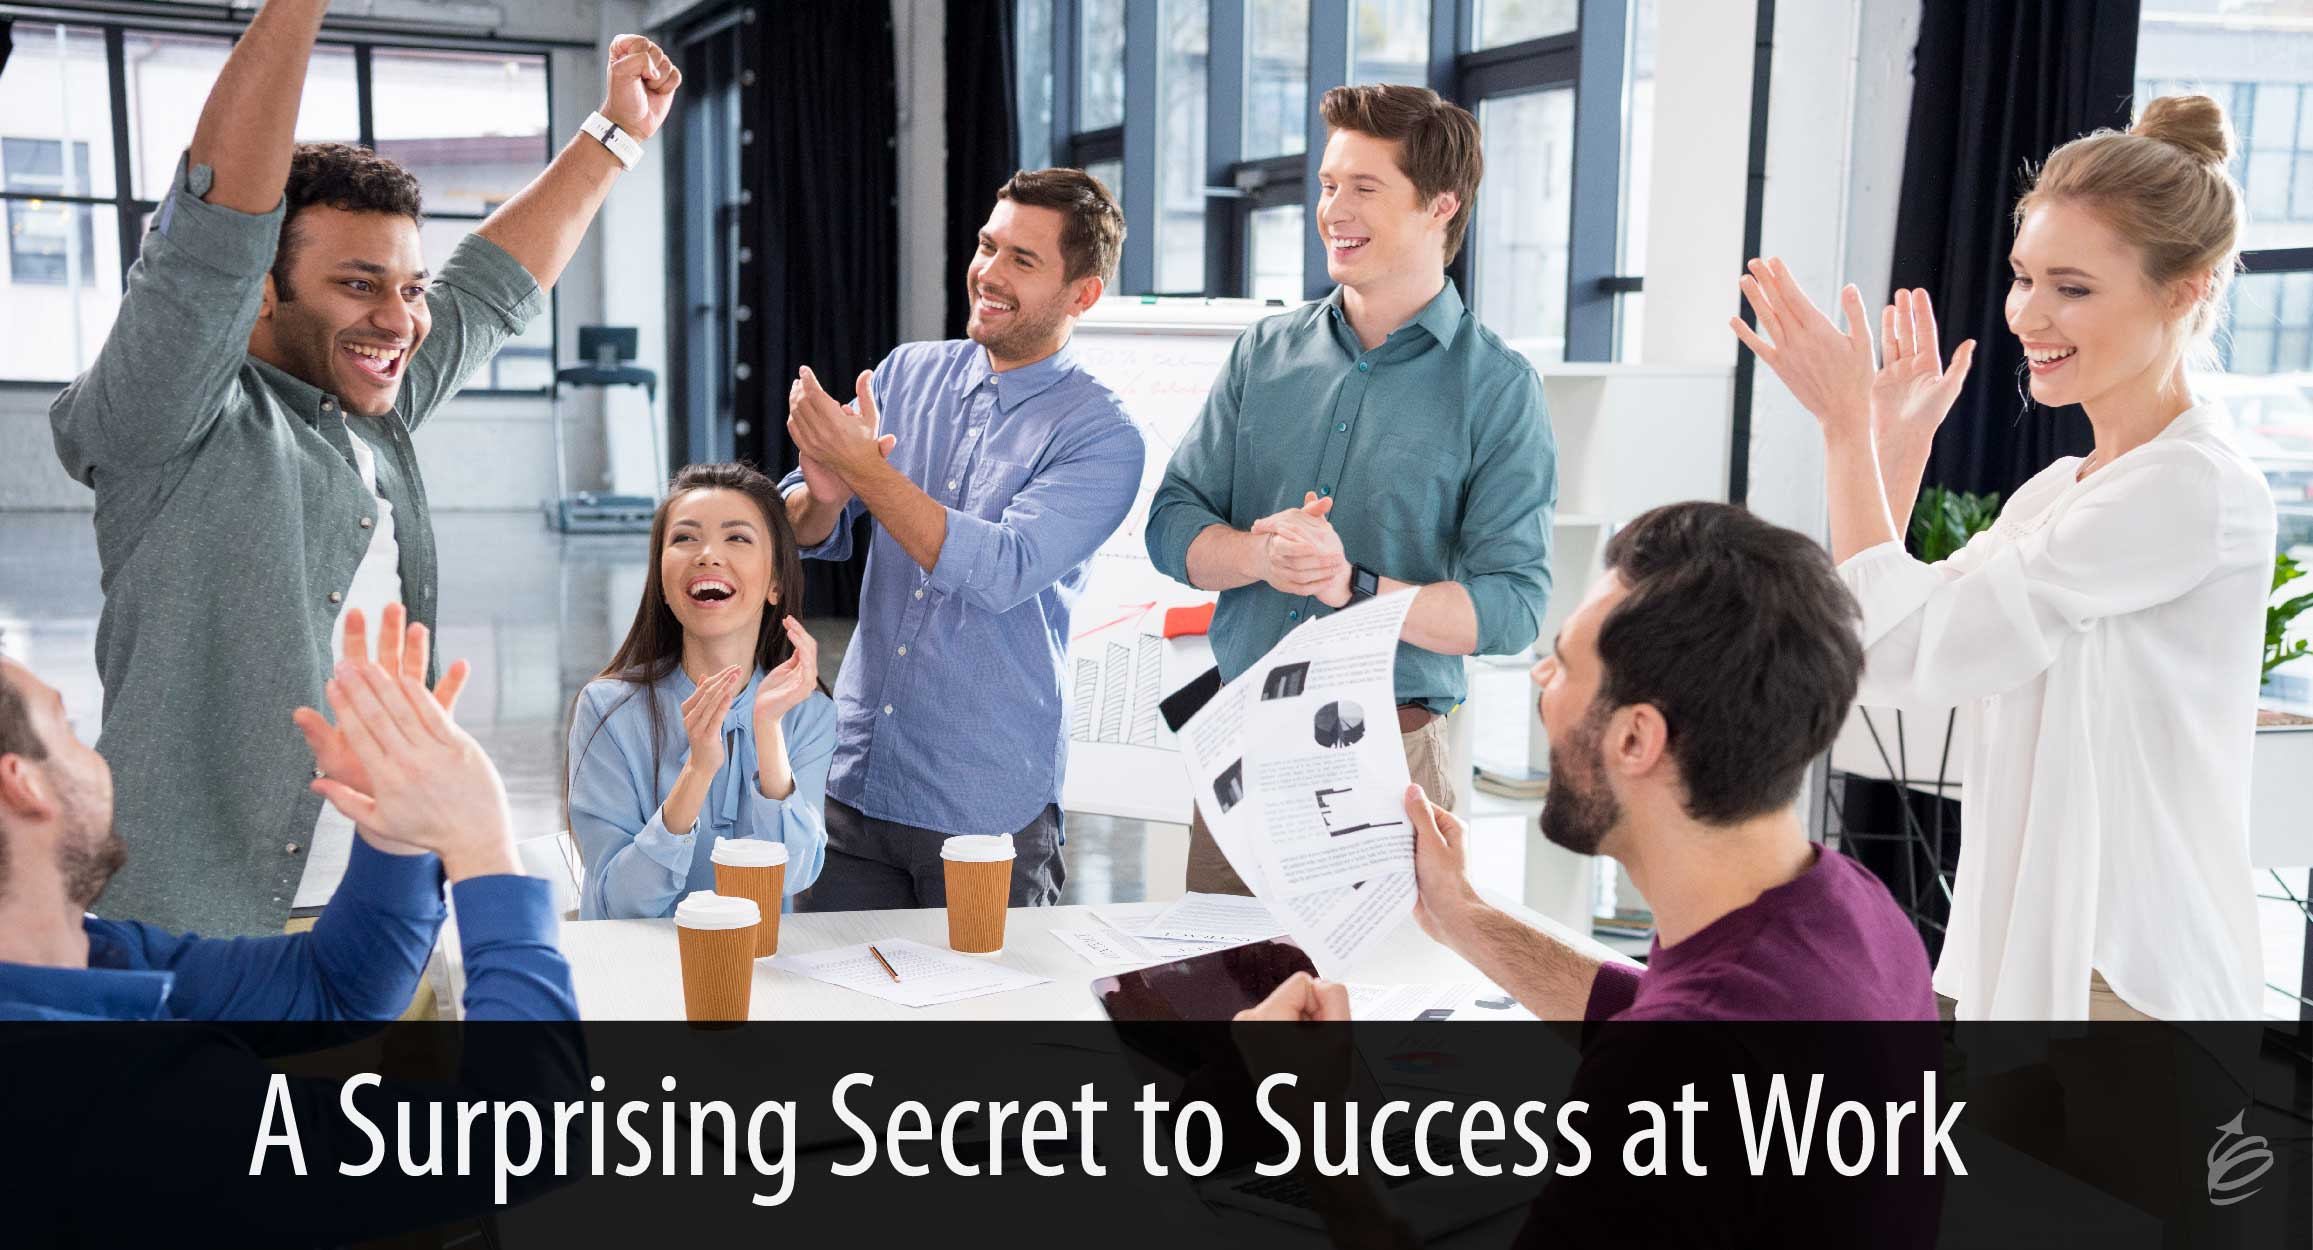 Interpersonal skills - A Surprising Secret to Success at Work